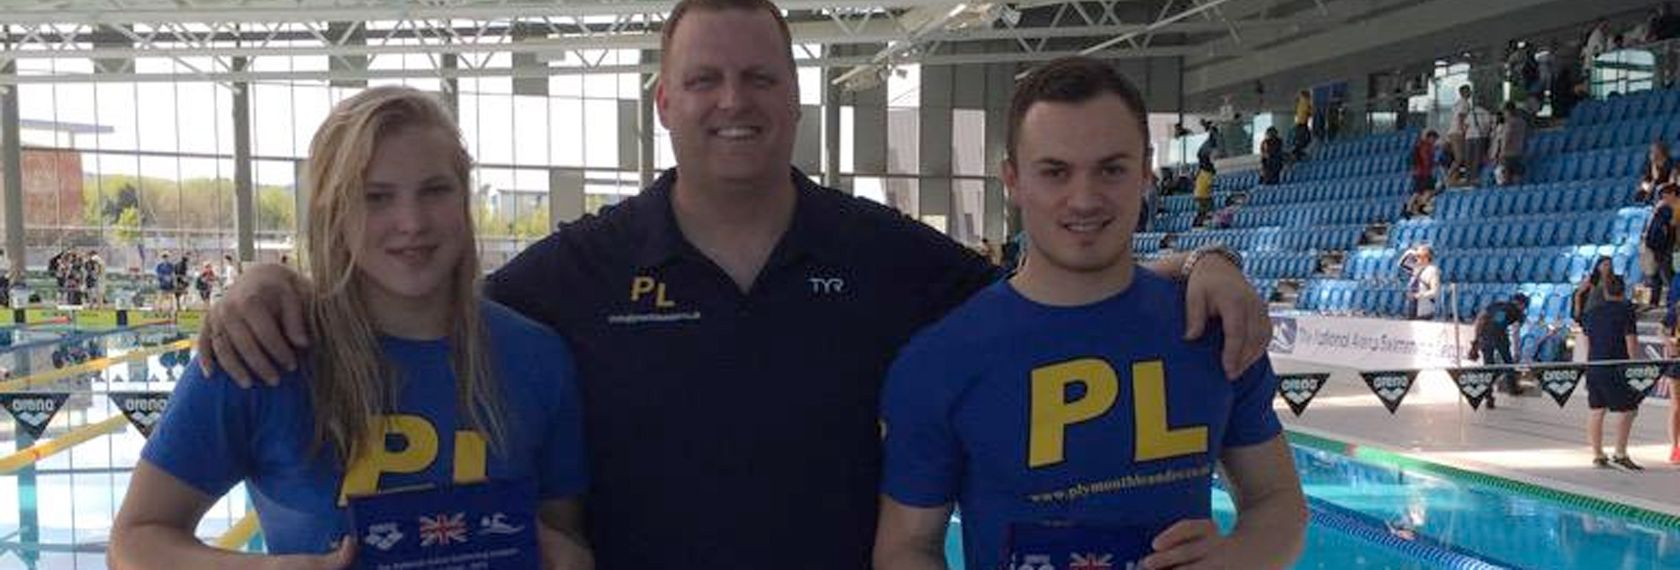 plymouth_leander_arena_league_2015.jpg